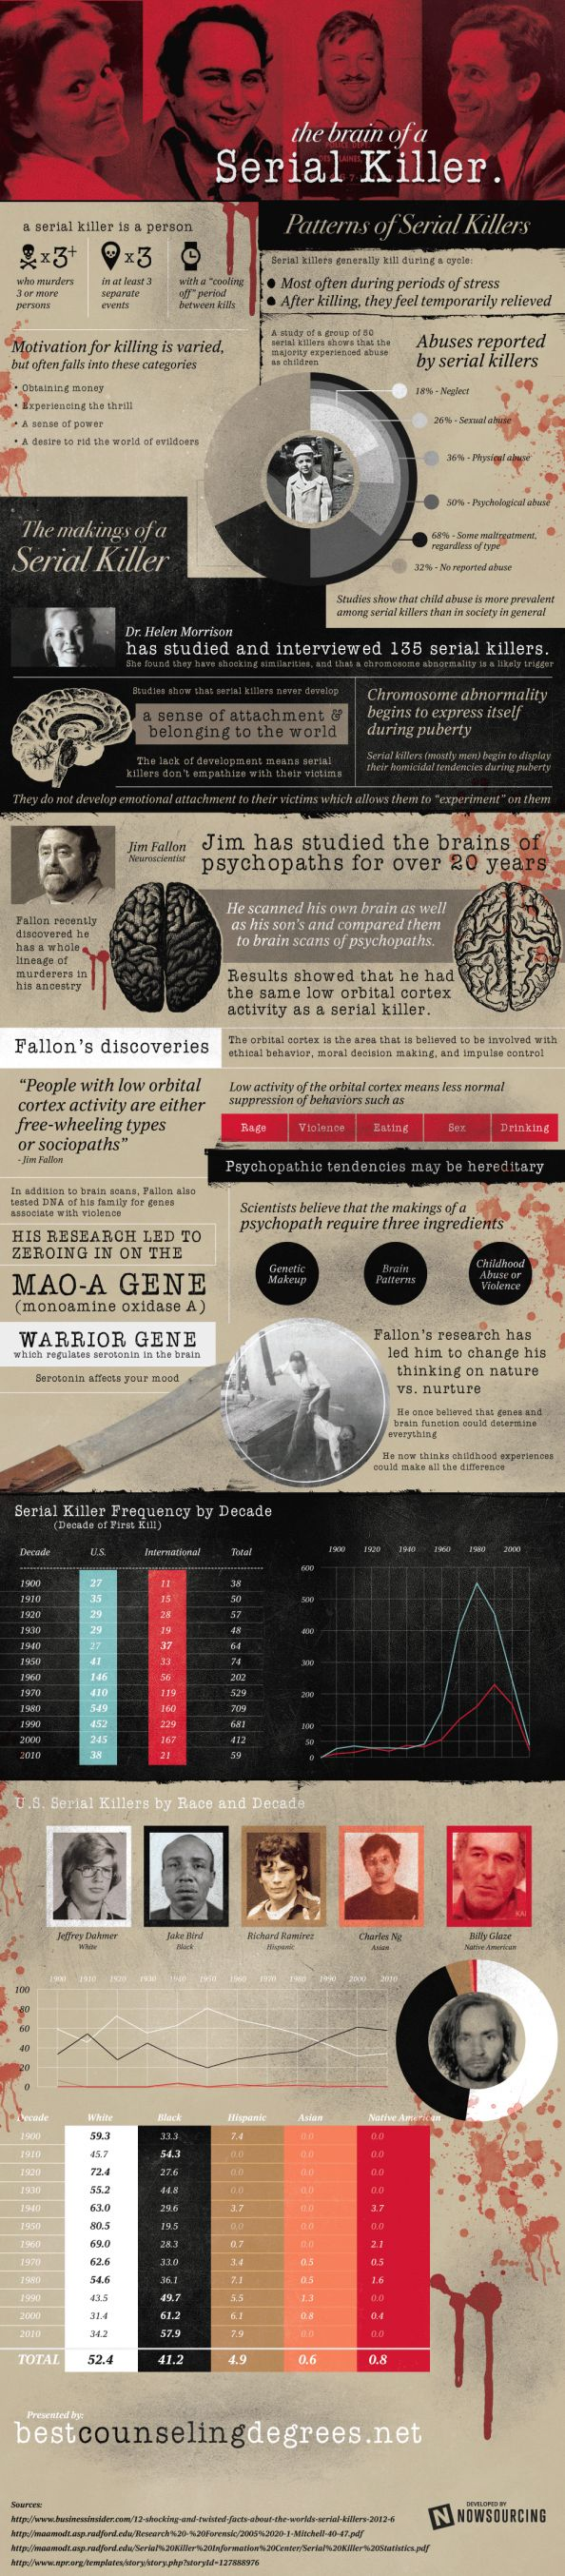 Forensic-The Brain of a Serial Killer Infographic